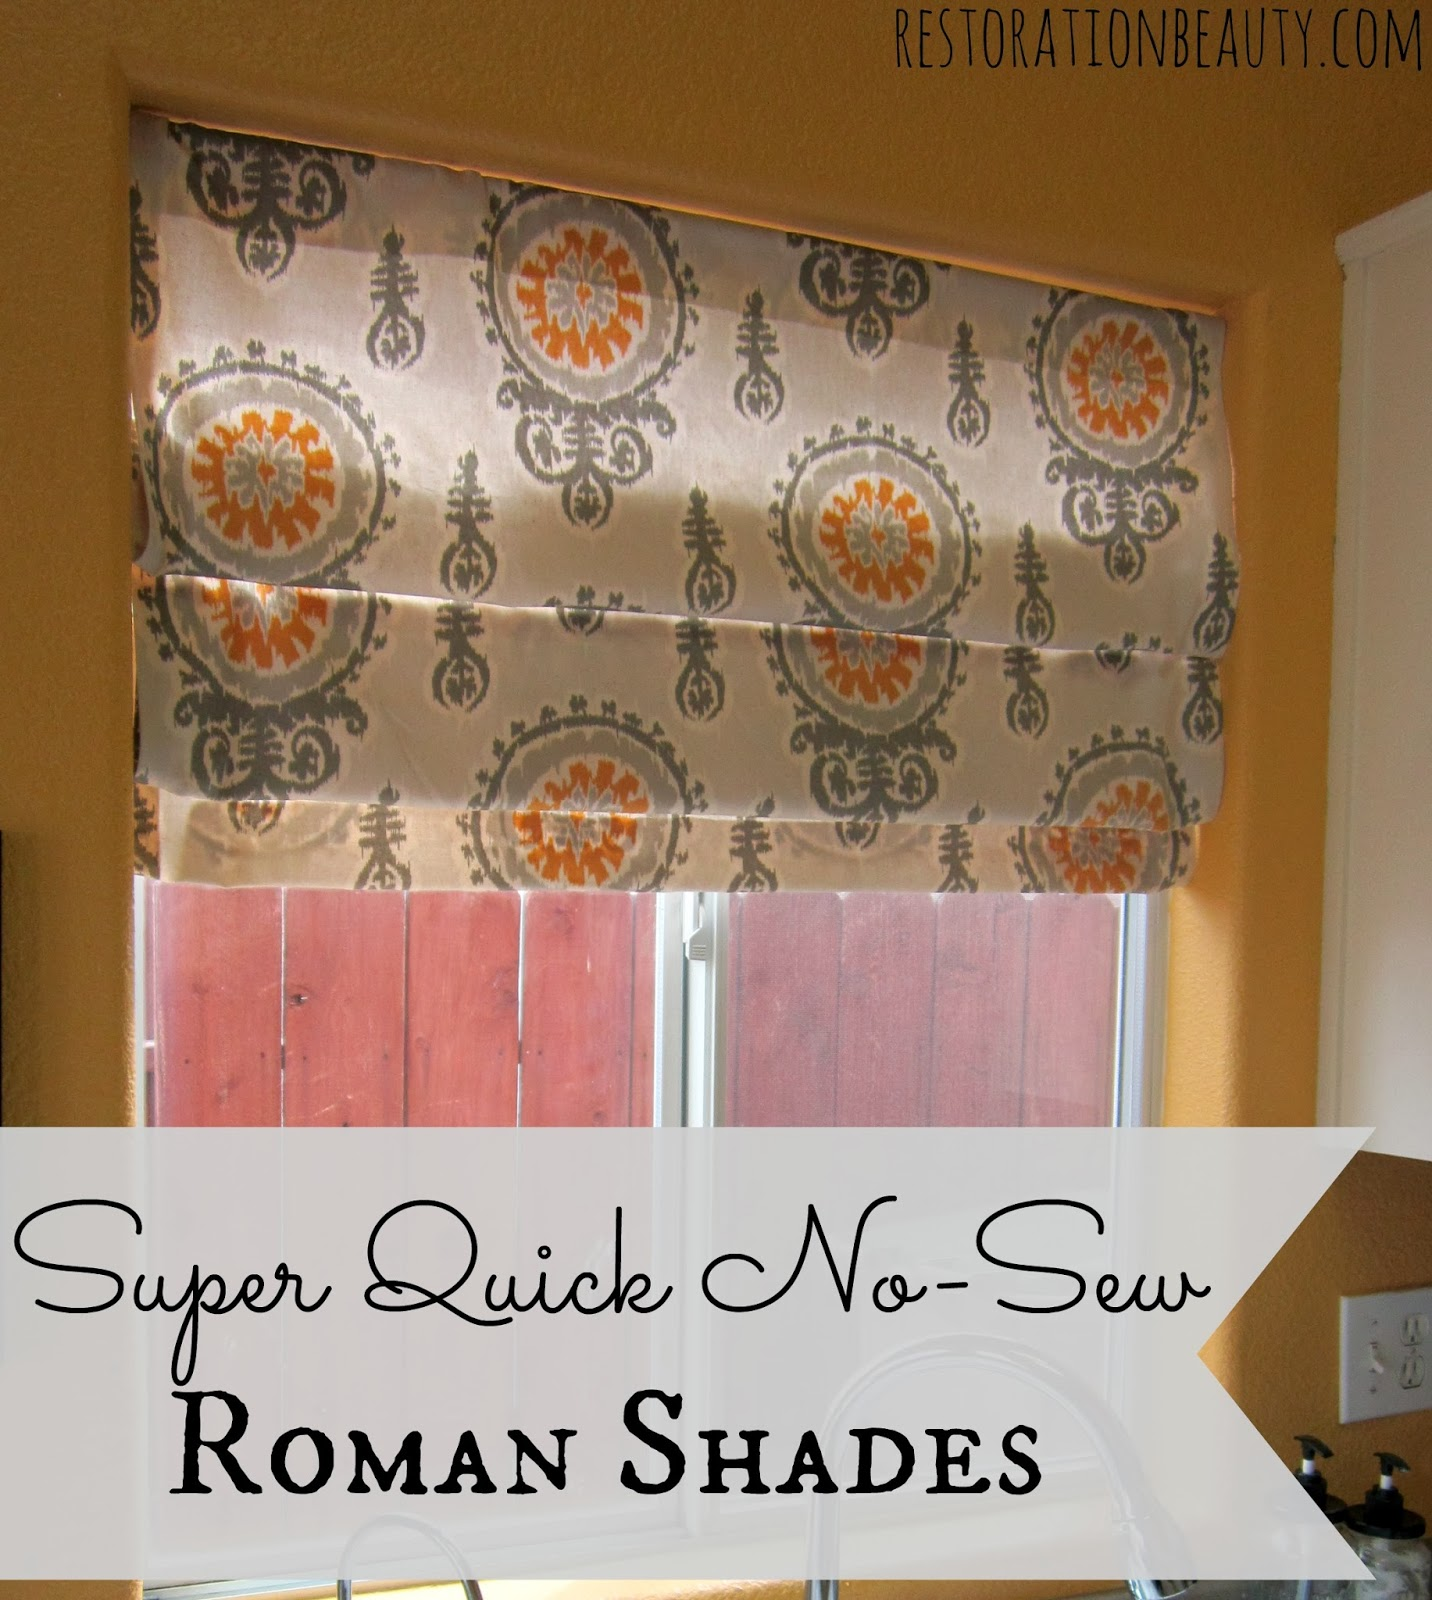 Diy Roman Shades Easy Restoration Beauty Super Quick No Sew Roman Shades